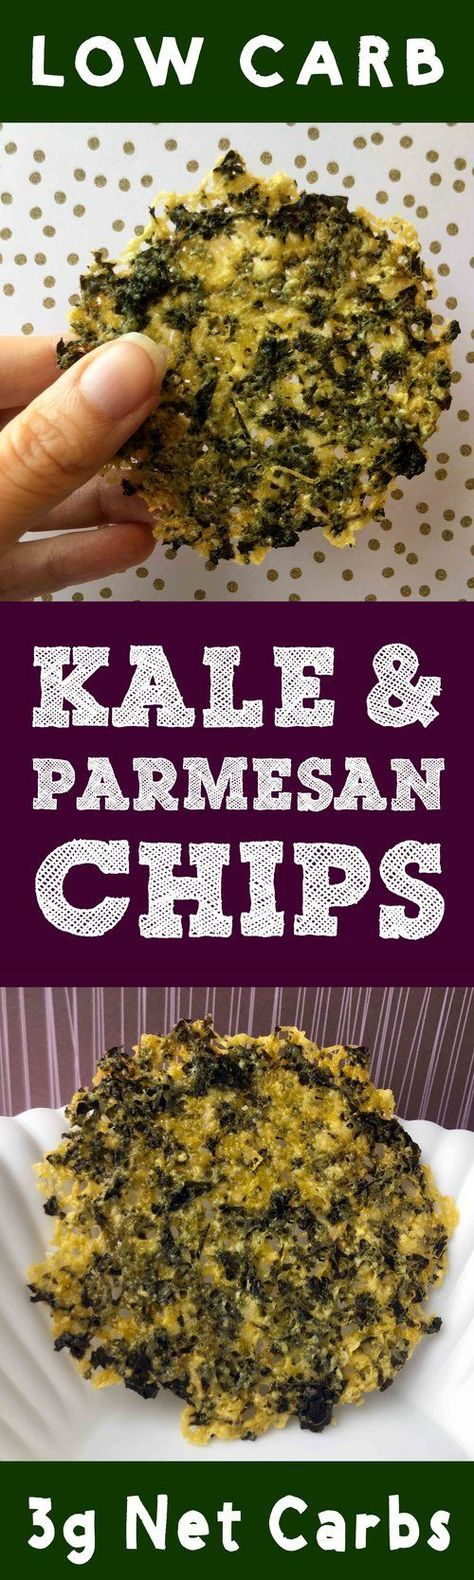 This recipe for Low Carb Kale and Parmesan Chips is Keto, Atkins, THM, Paleo, LCHF, Sugar Free and Gluten Free. It's the perfect kaley cheesy chip.